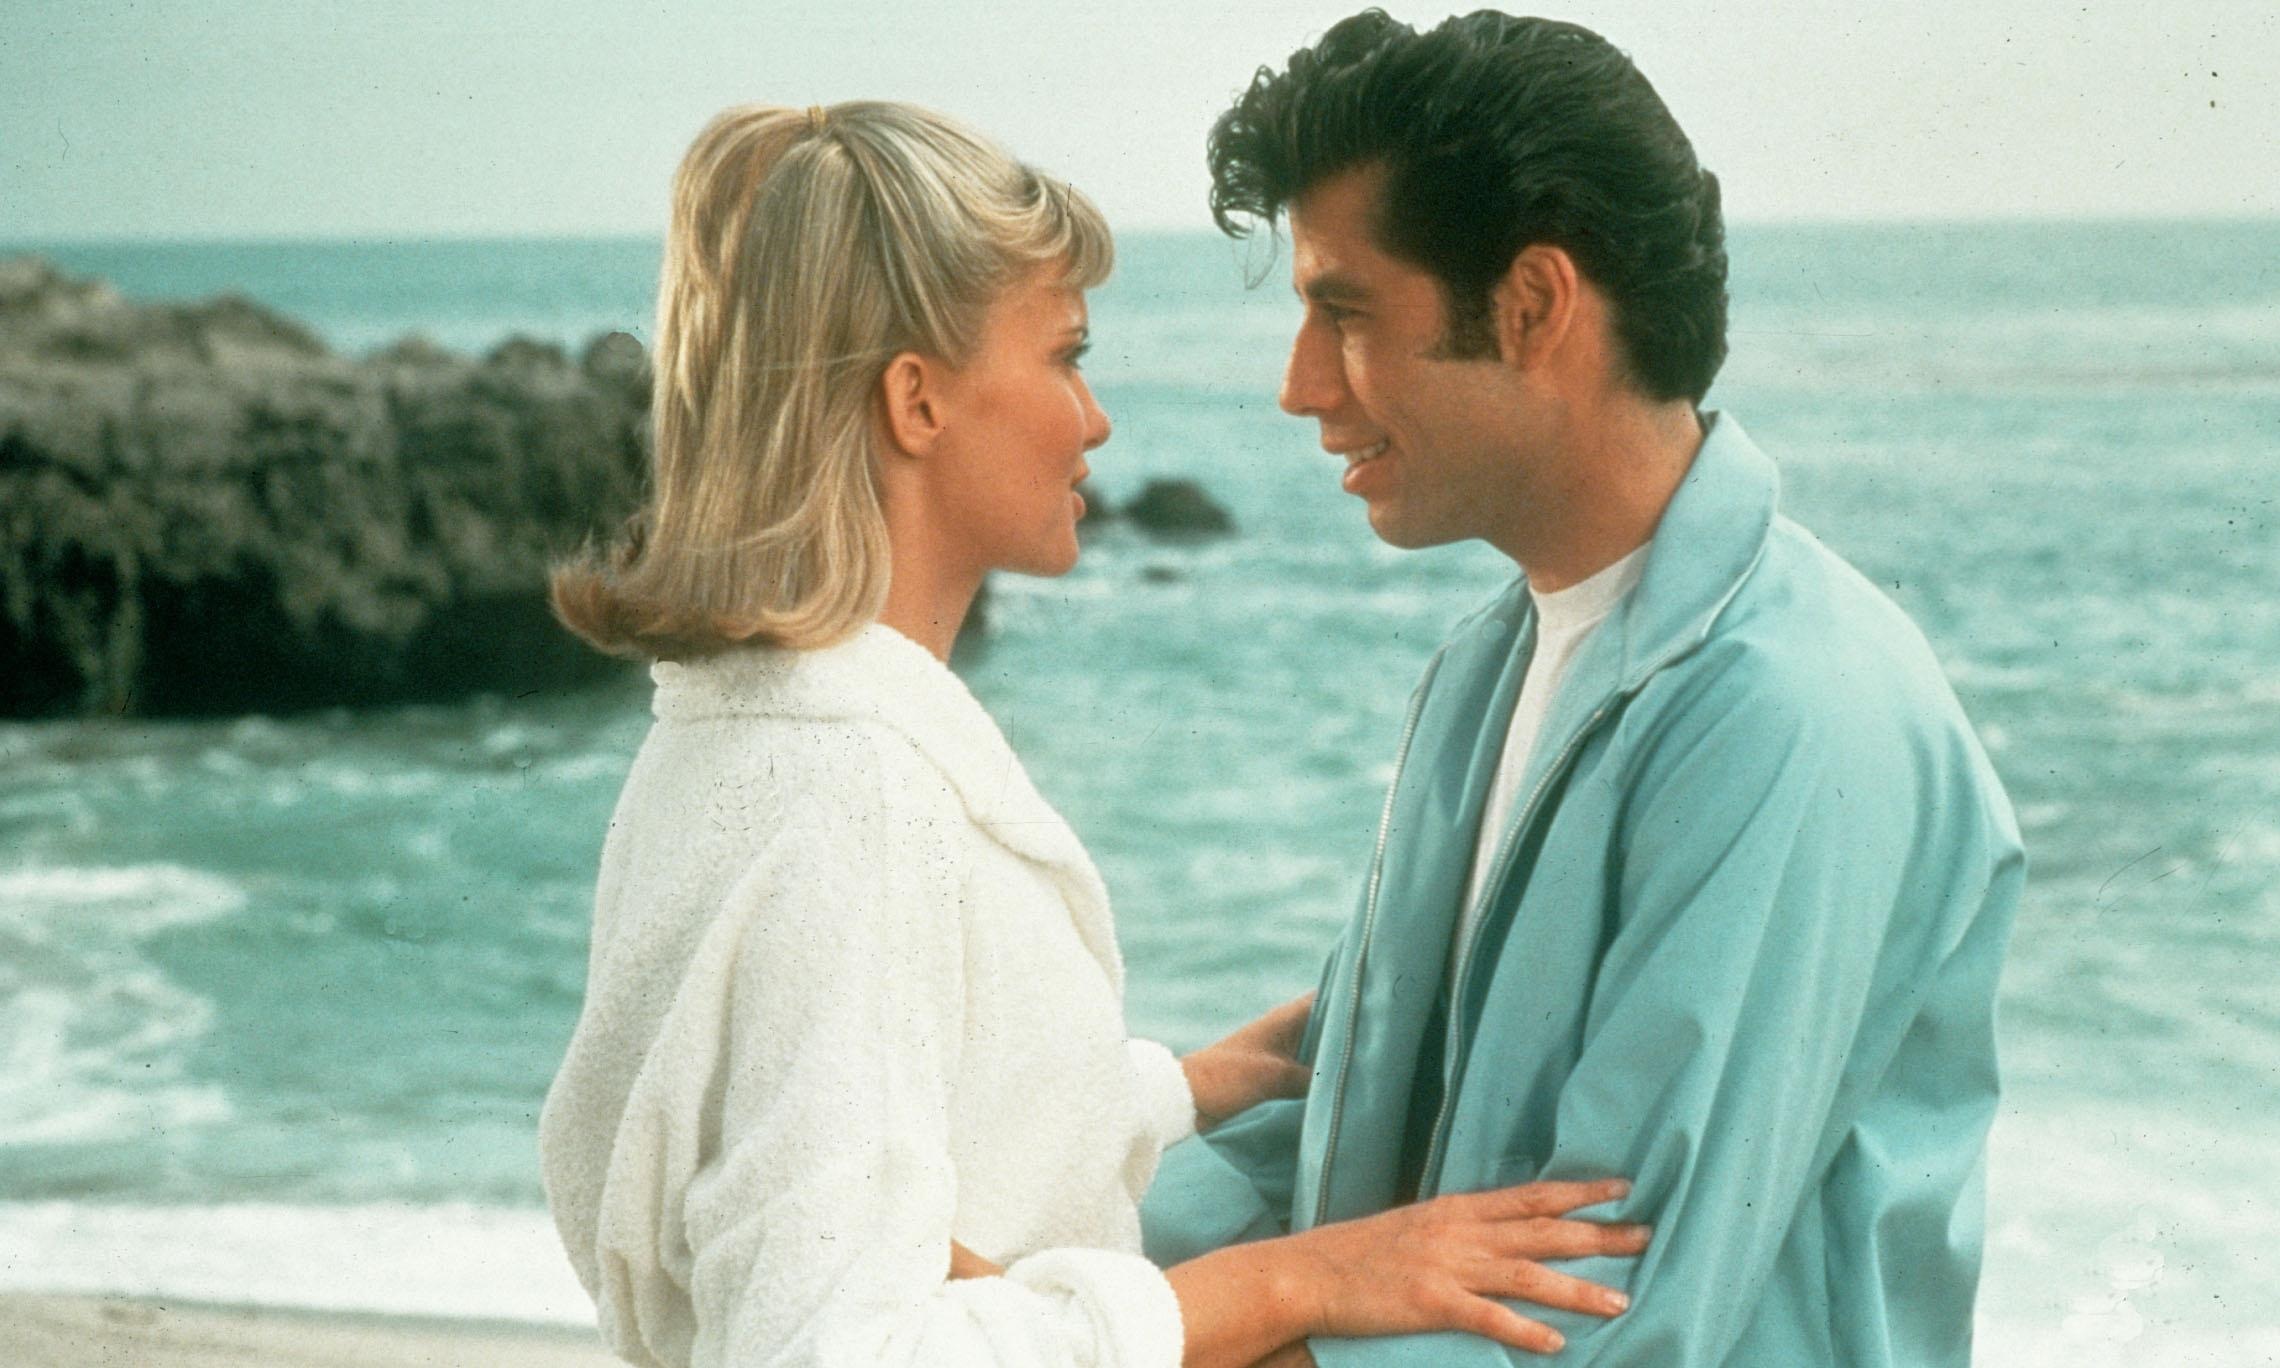 Tell me more, tell me more: Summer Loving Grease prequel in the works